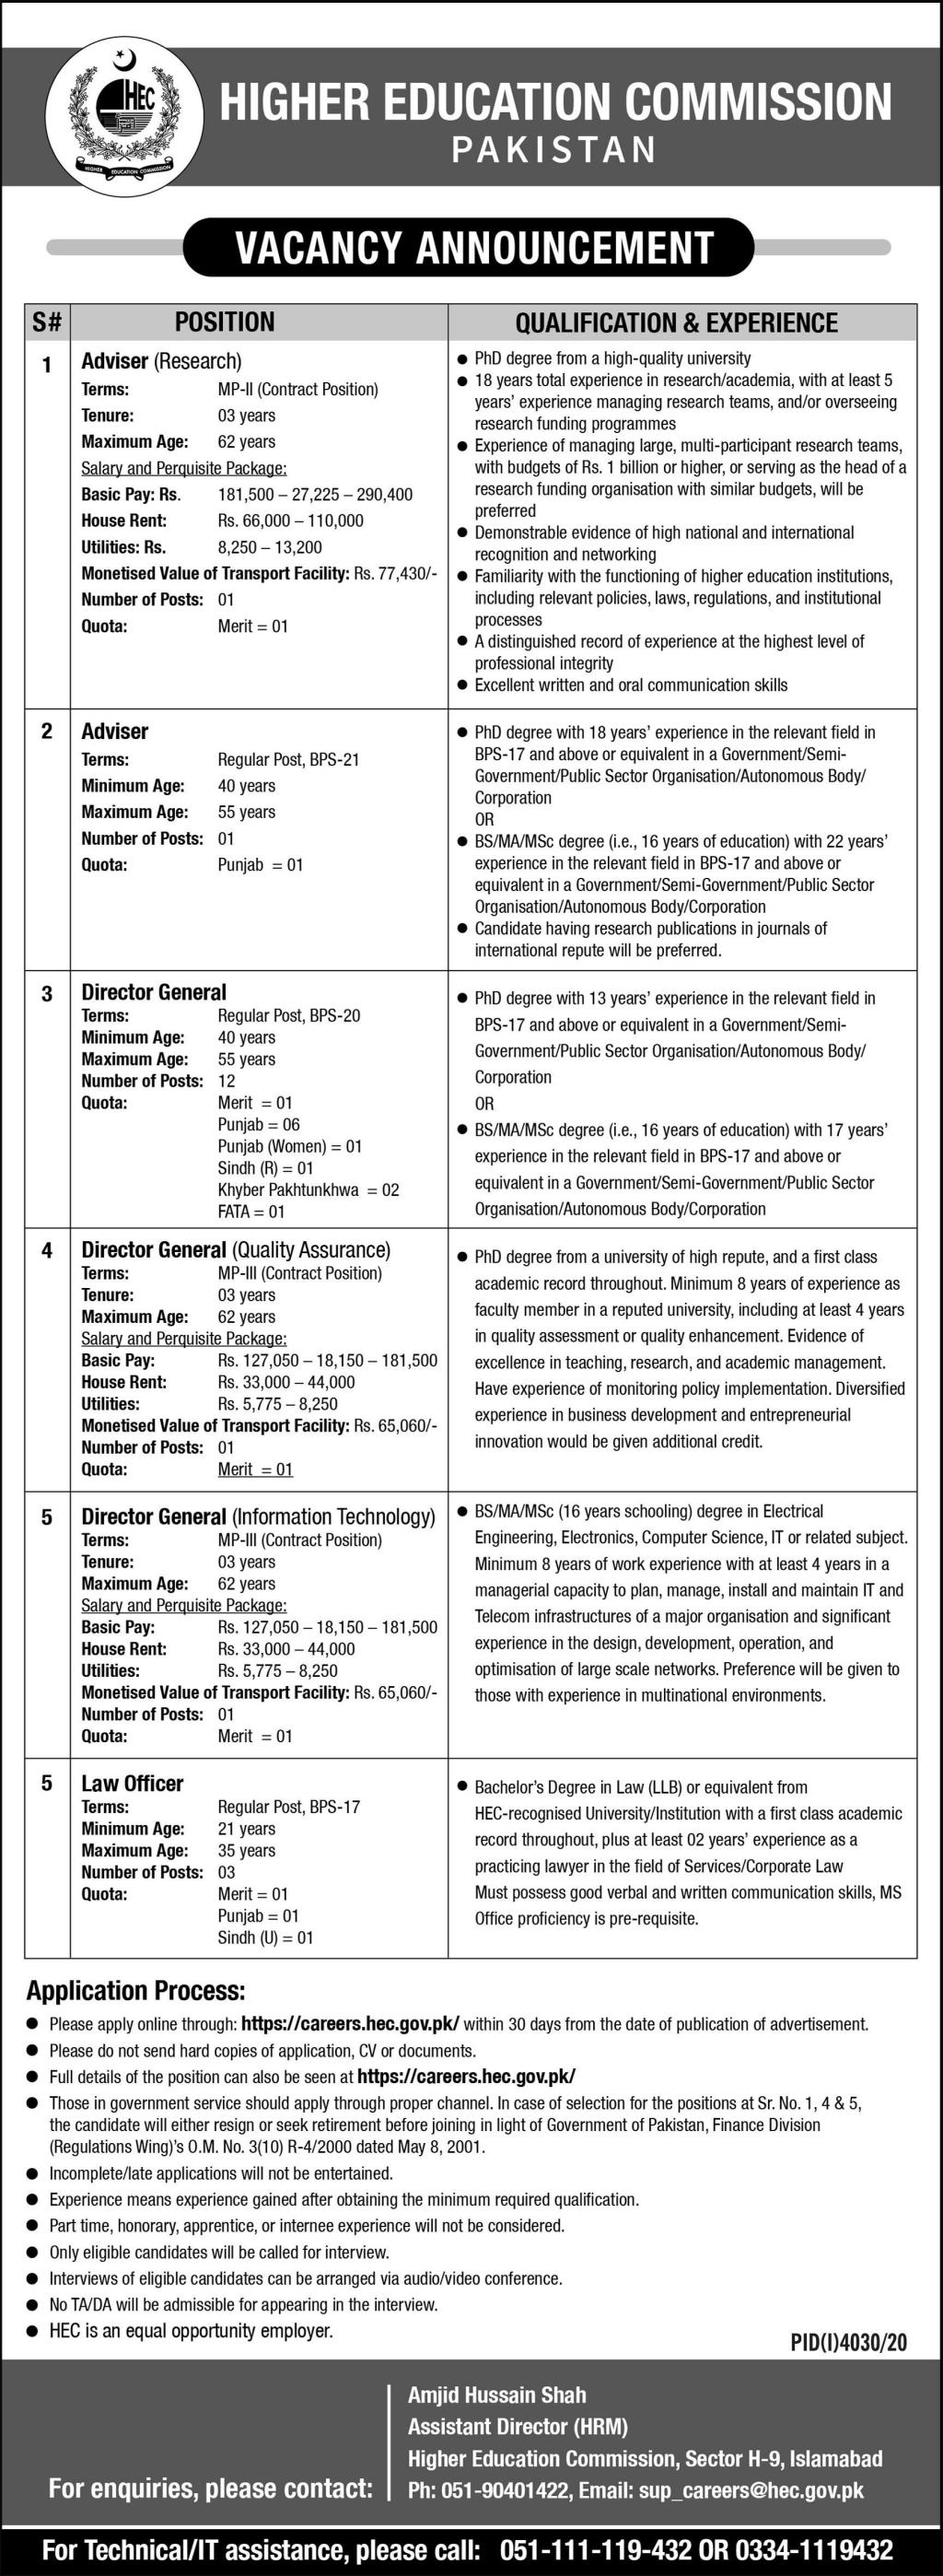 Higher Education Commission HEC Jobs February 2021 For Research Advisor, Director General, Law Officer & more